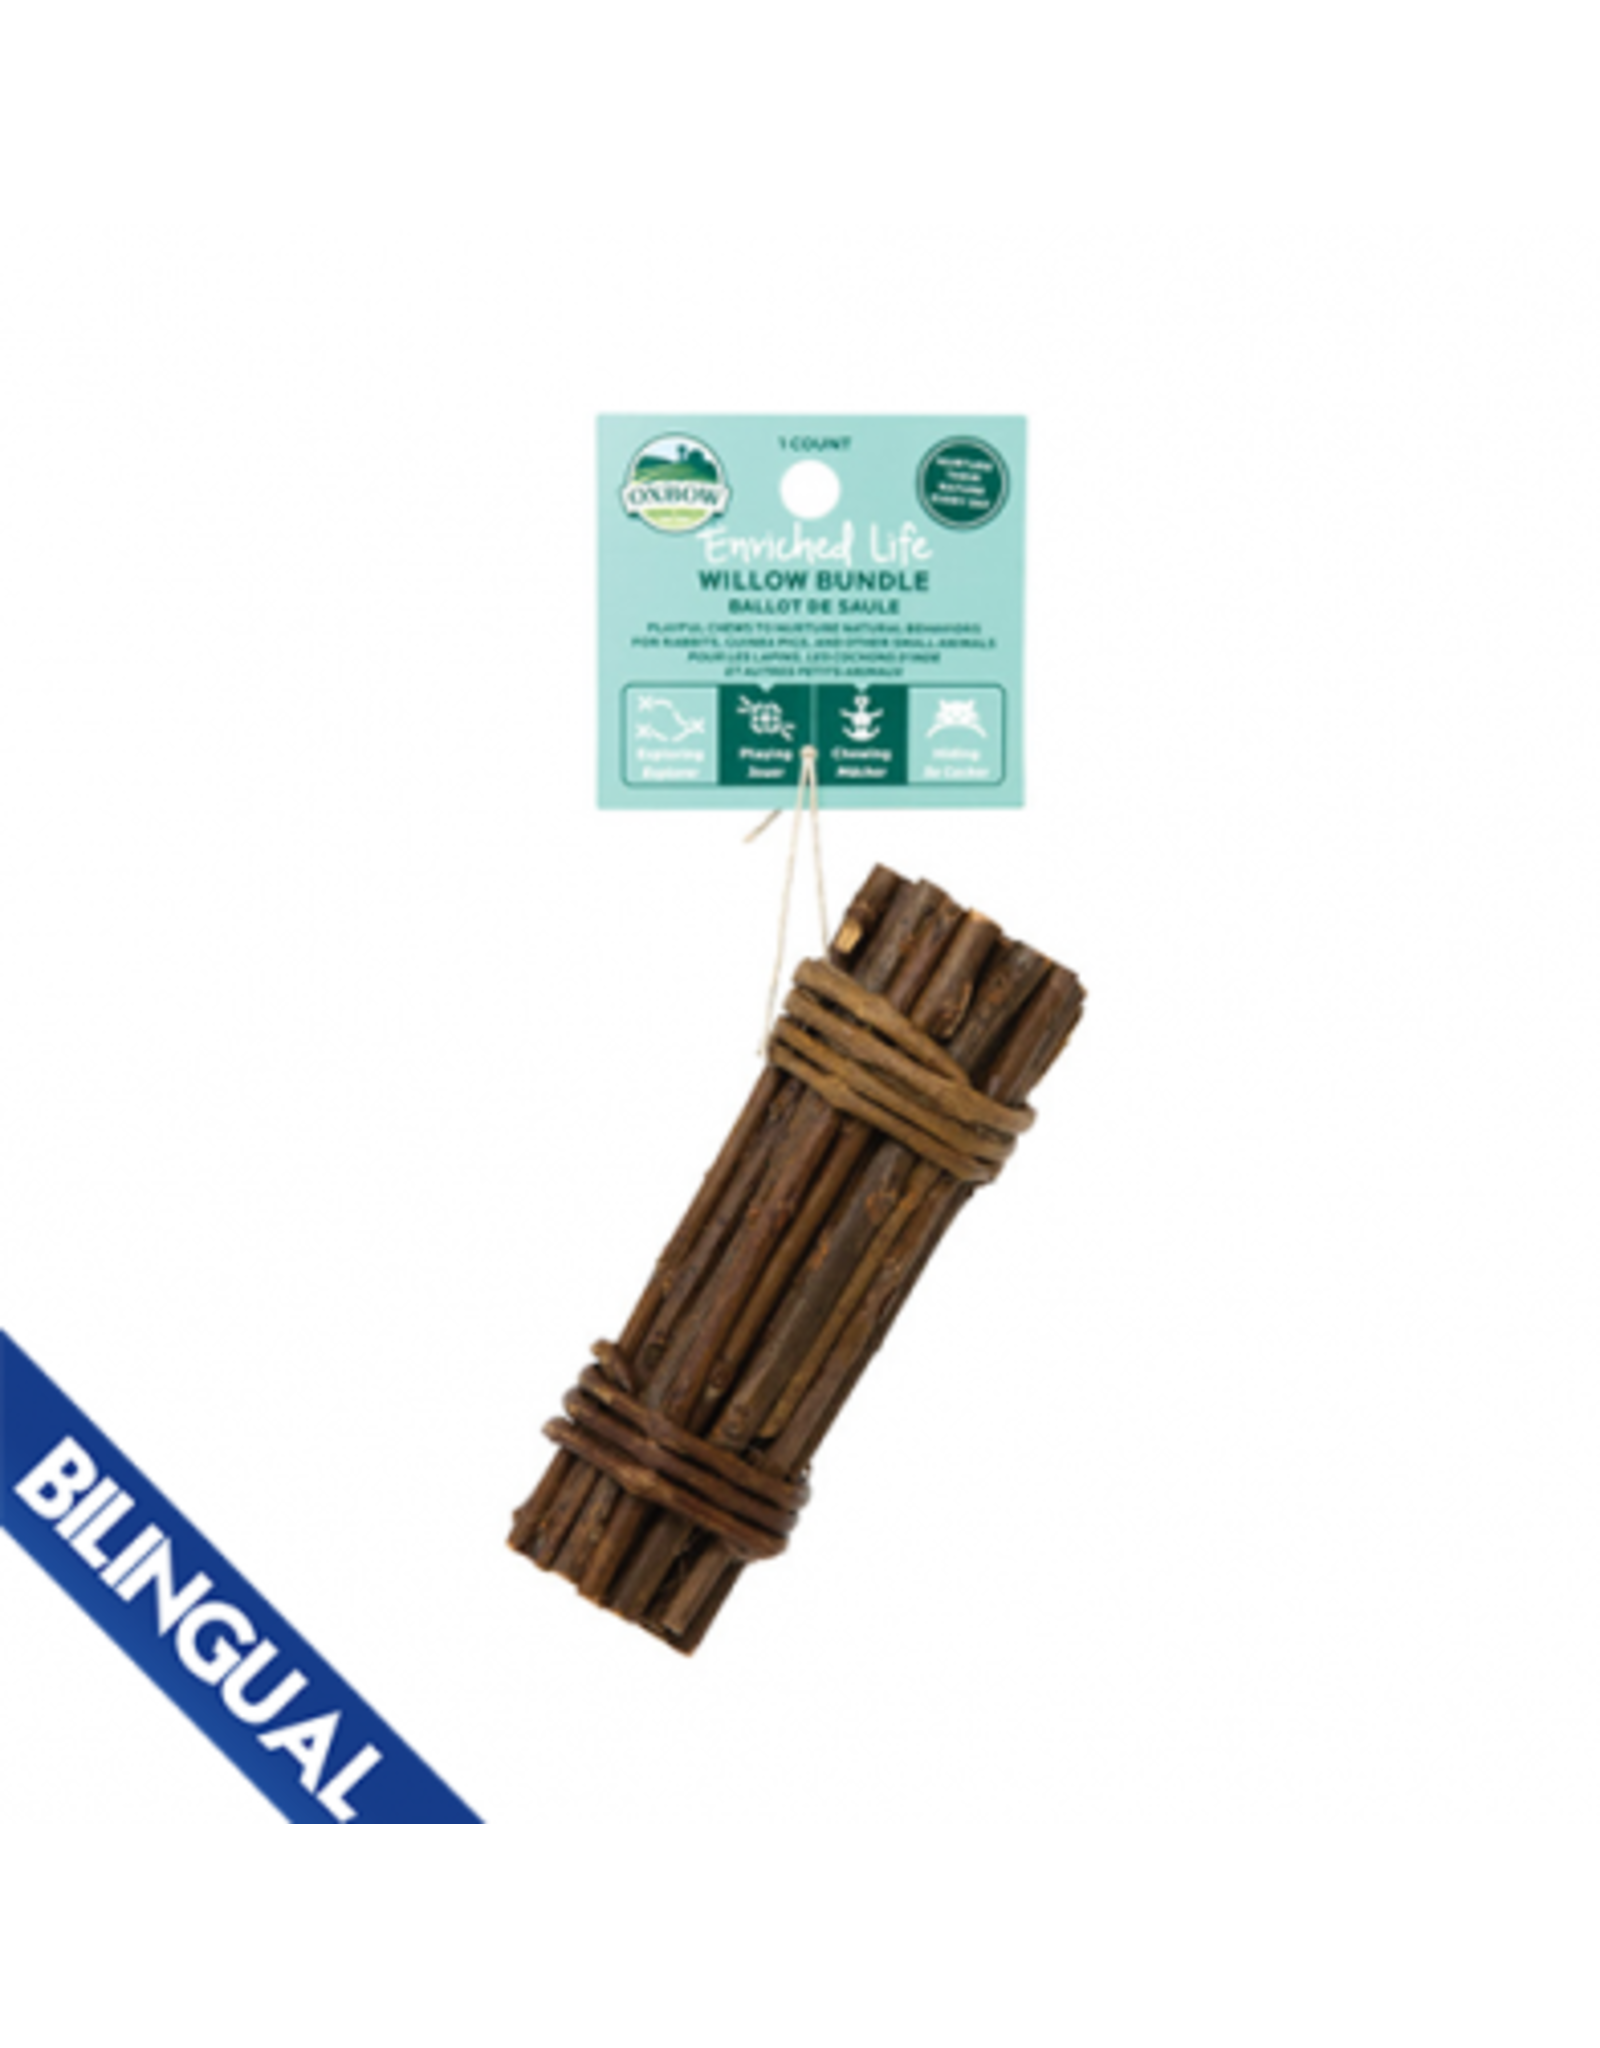 Oxbow OXBOW \ Enriched Life \ Willow Bundle